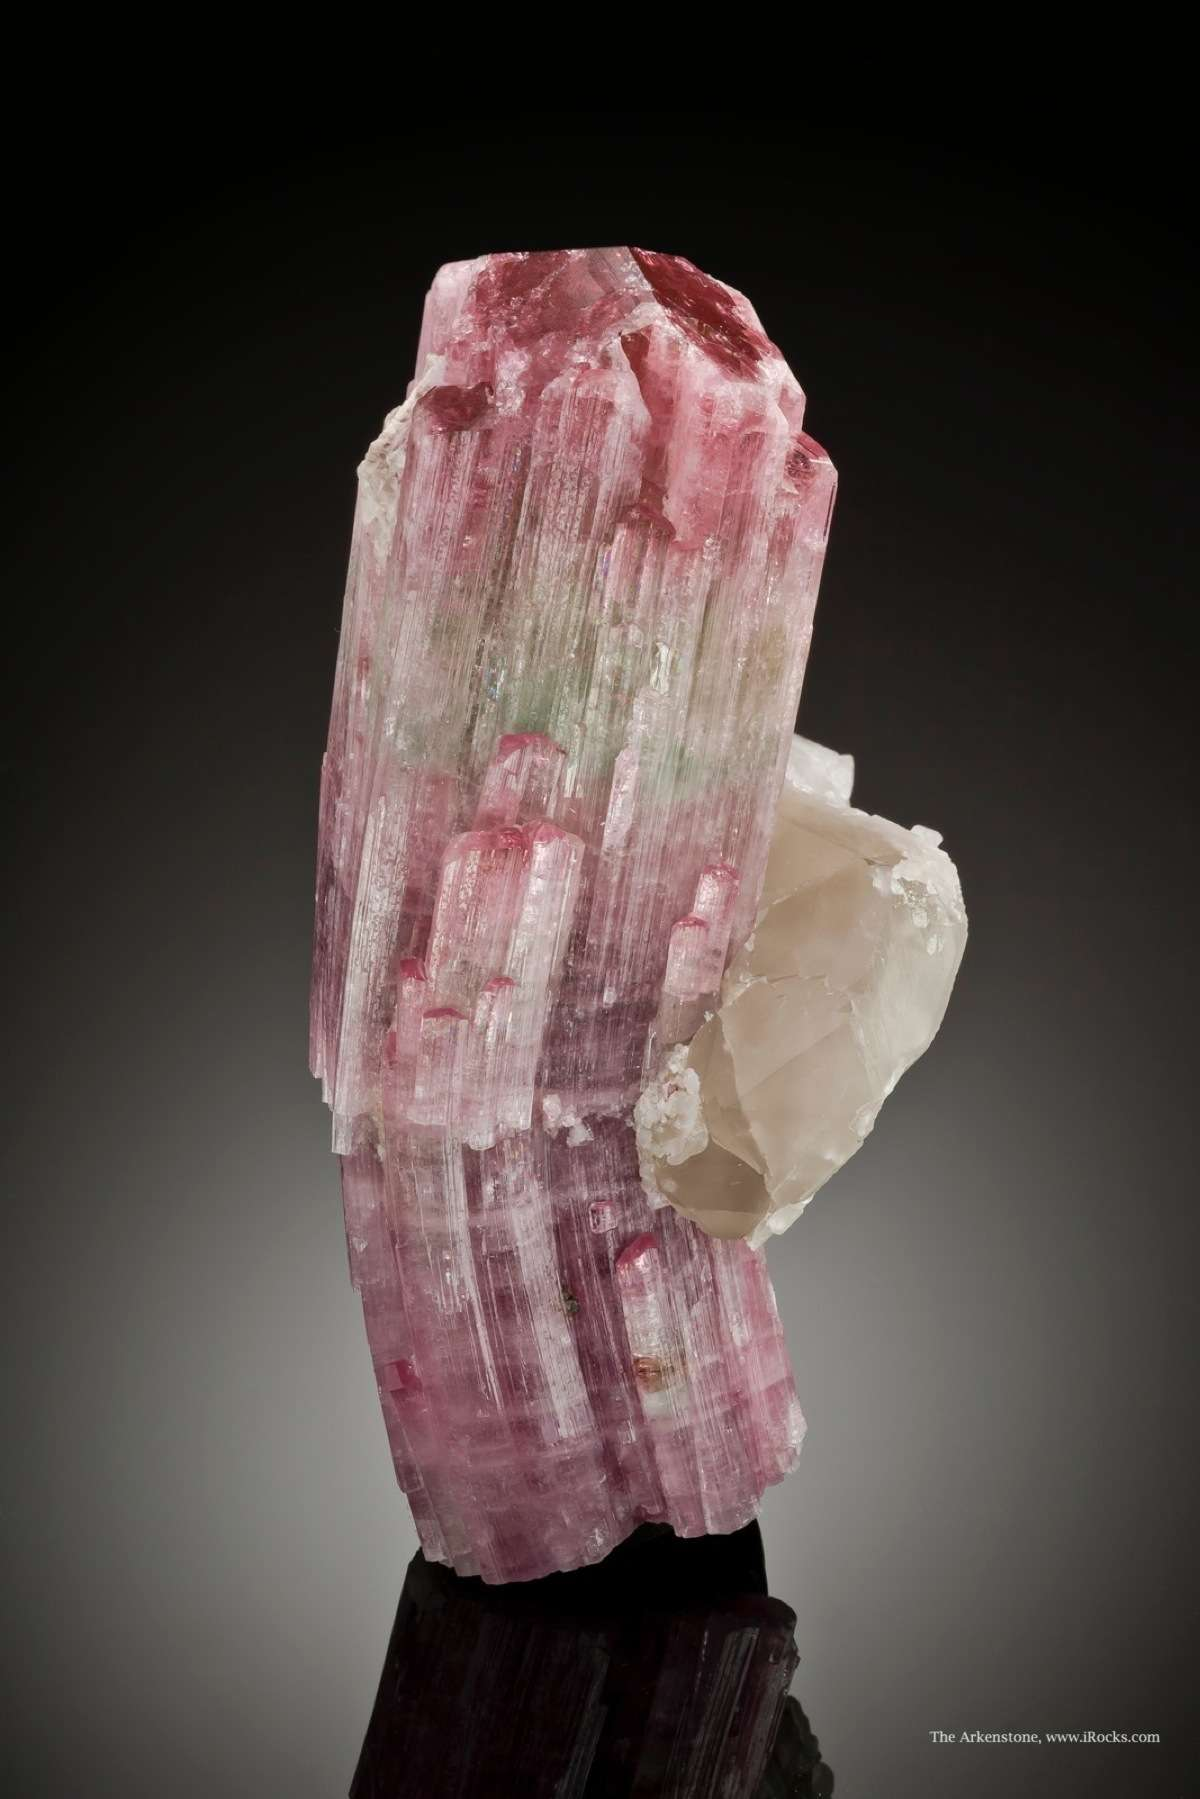 From Herb Obodda collection unusual bent tourmaline growth curvature